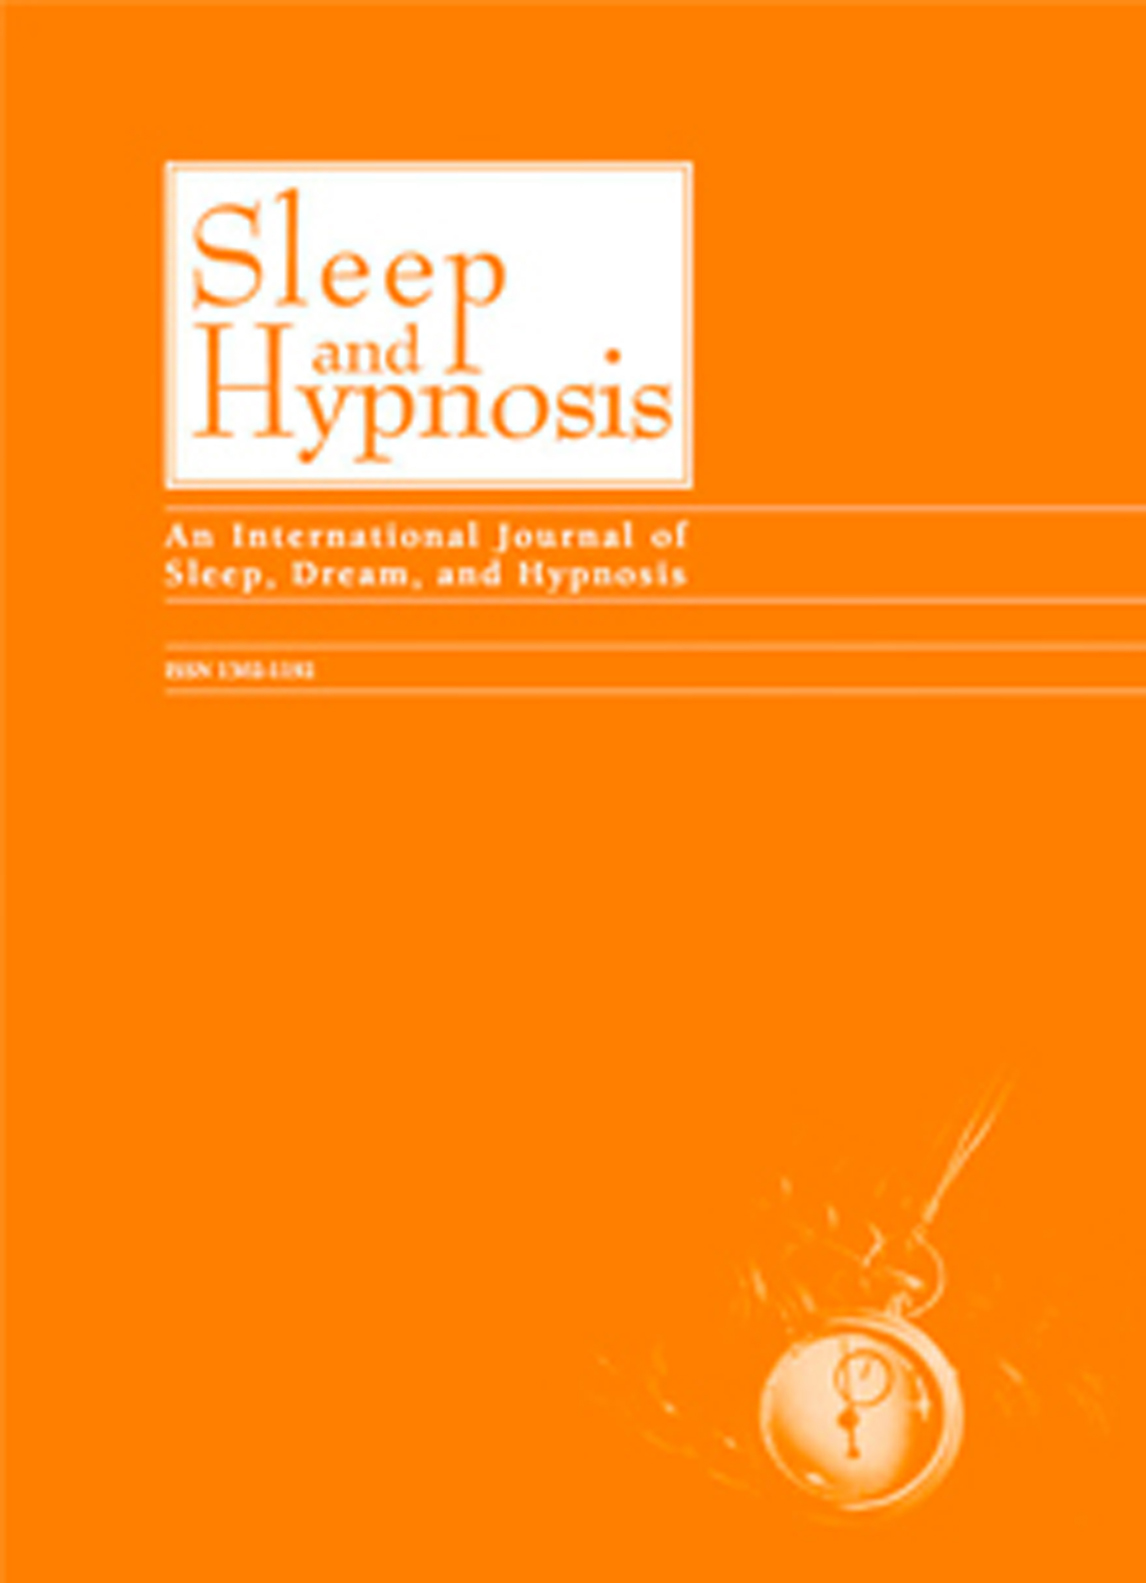 Journal Of Clinical Sleep And Hypnosis A Journal Of Clinical Neuroscience And